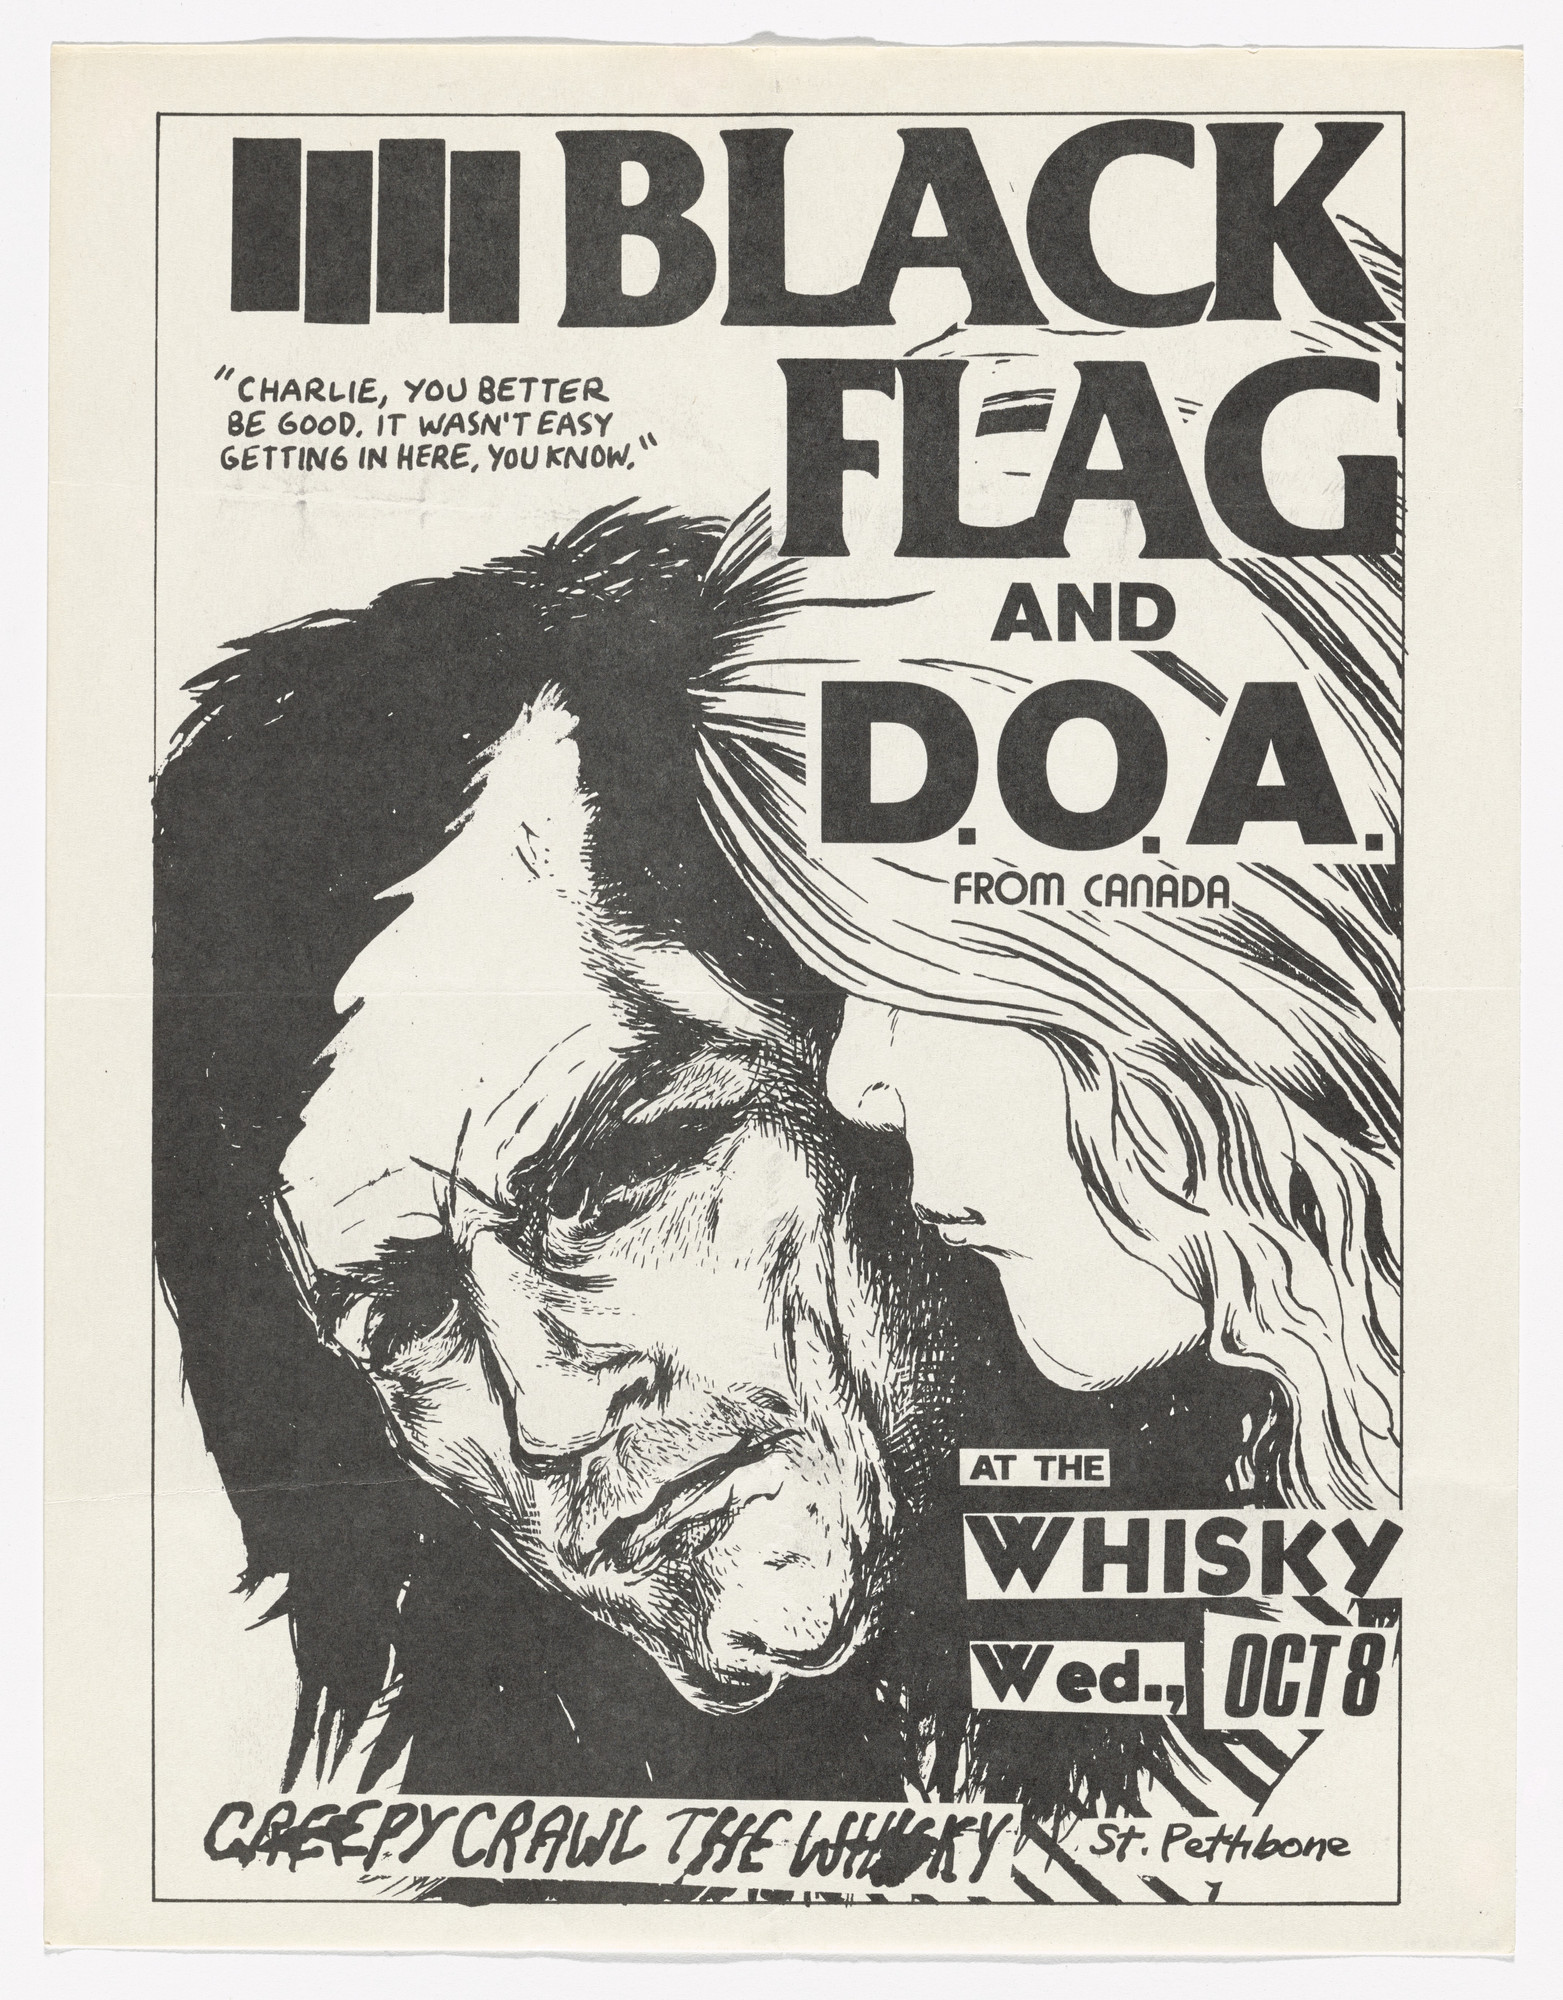 Raymond Pettibon. Black Flag and D.O.A. at Whisky. October 8, 1980